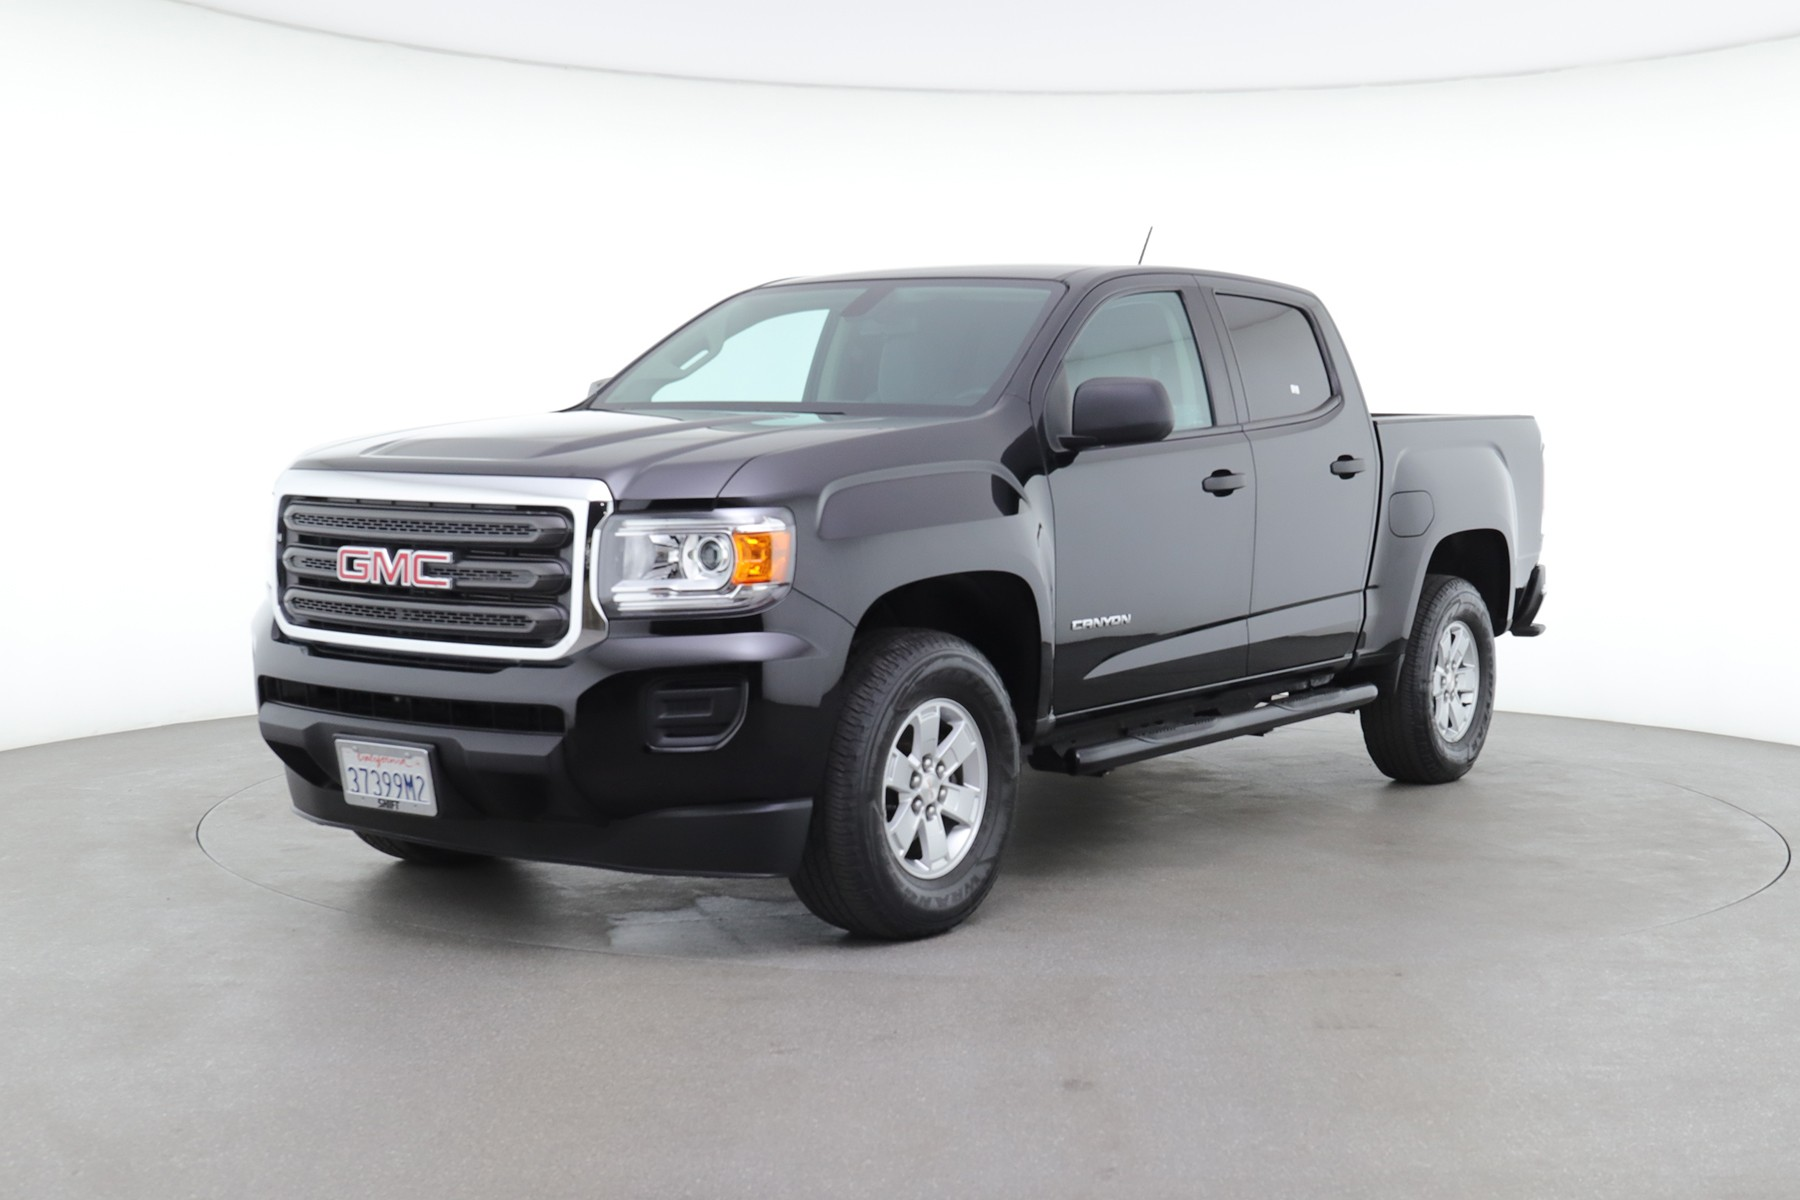 2018 GMC Canyon 2WD (from $25,950)